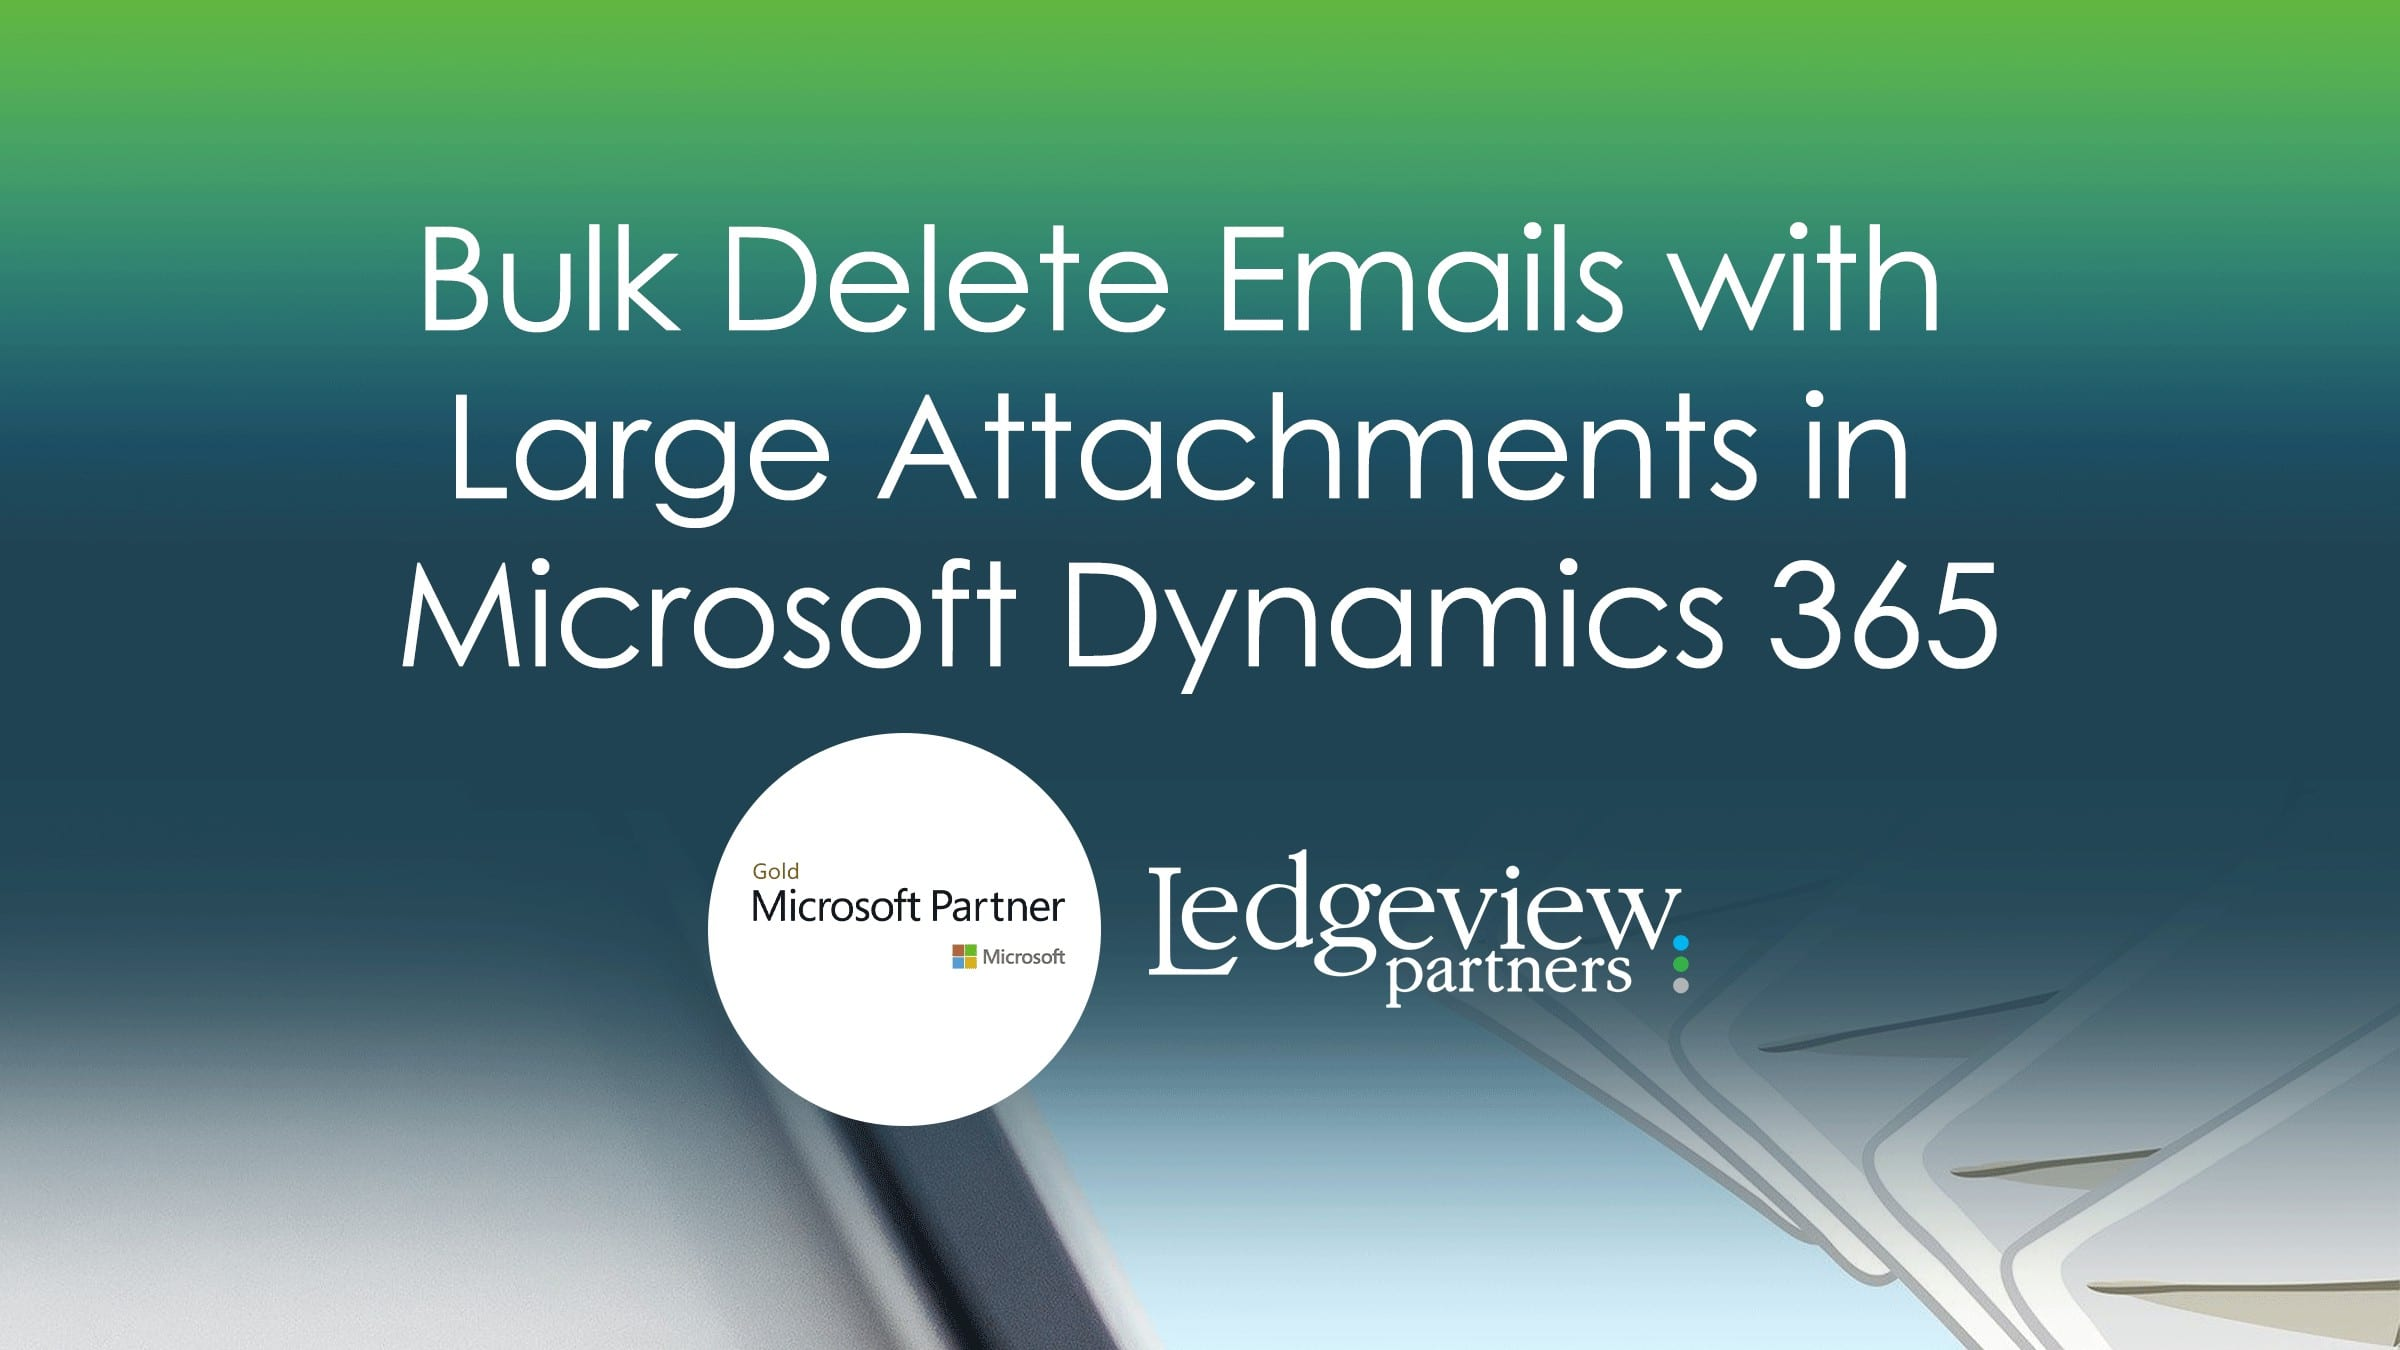 How to Bulk Delete Emails with Large Attachments in Dynamics 365